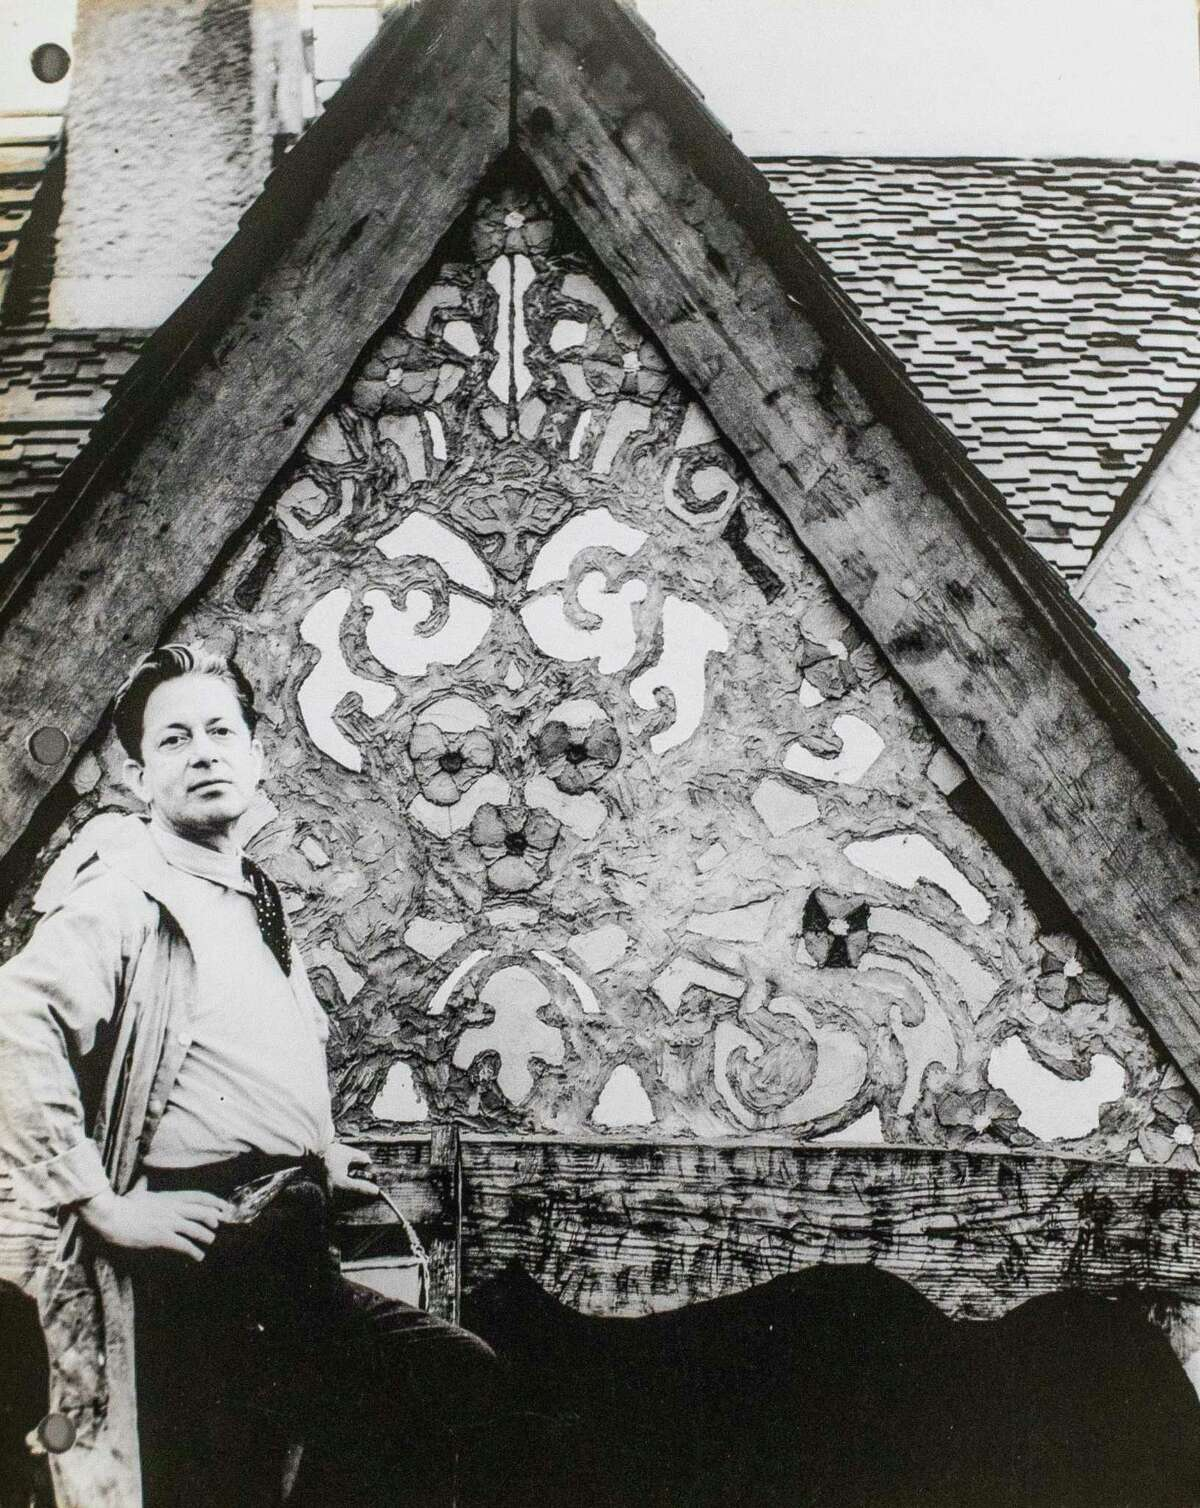 A photo from September of 1925 shows the original mural on the front of the former home of Willard Dow and his family, located at 923 W. Park Drive and now owned by Janet and Irving Snyder. (Photo provided/Janet Snyder)